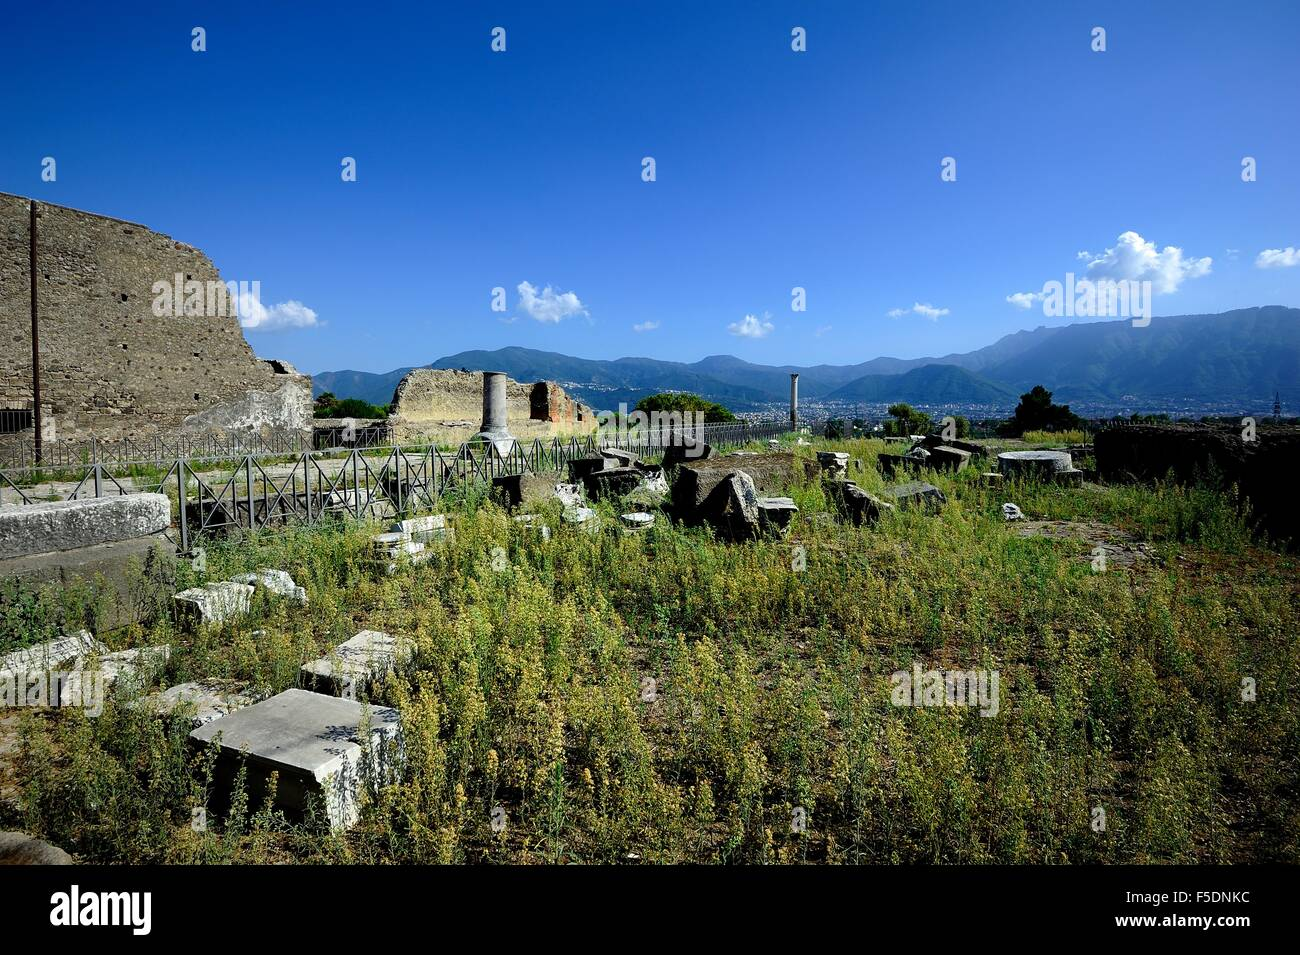 The ruins of the Basilica of Pompeii - Stock Image